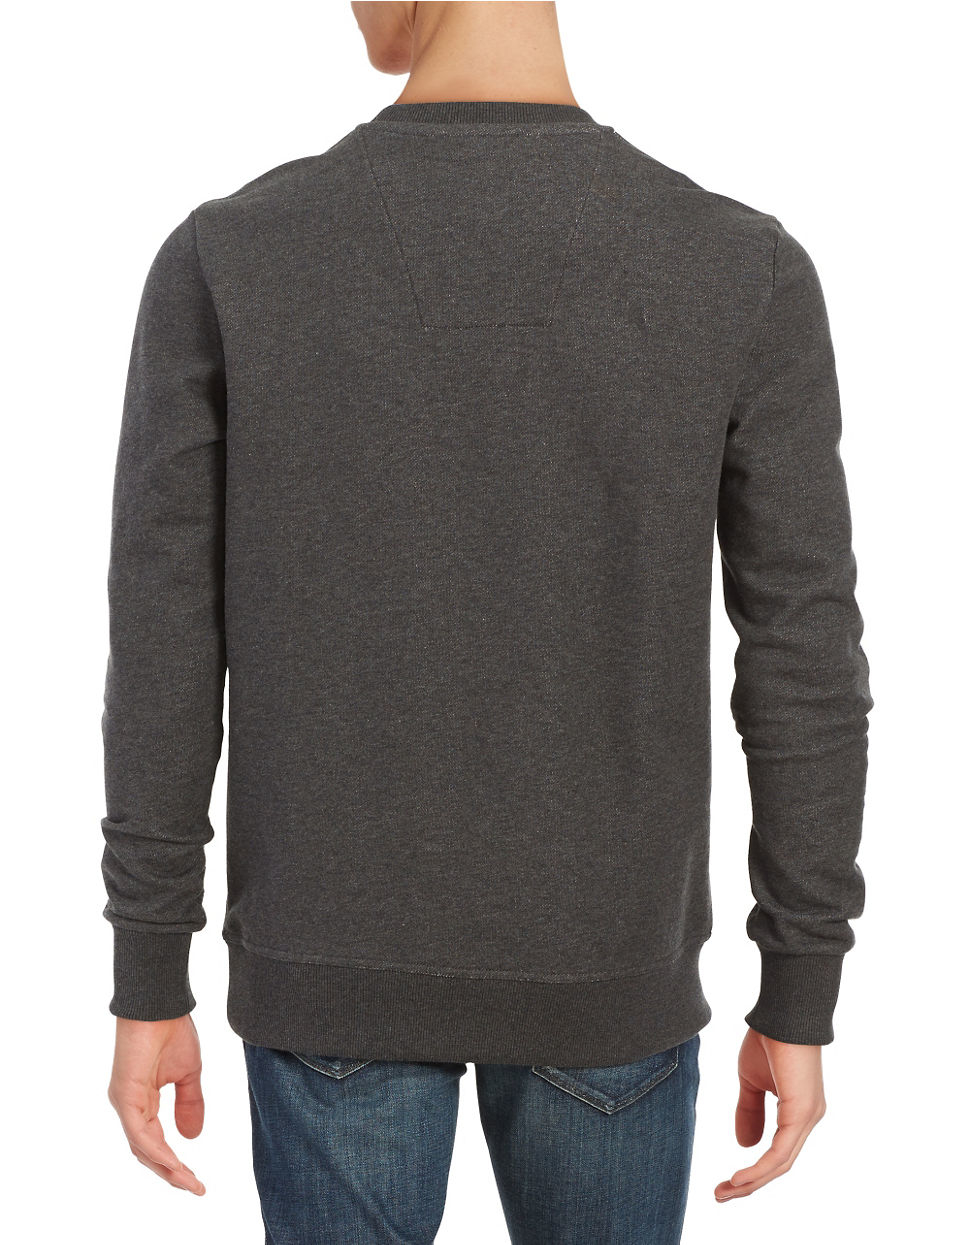 star raw logo pullover sweatshirt in gray for men lyst. Black Bedroom Furniture Sets. Home Design Ideas